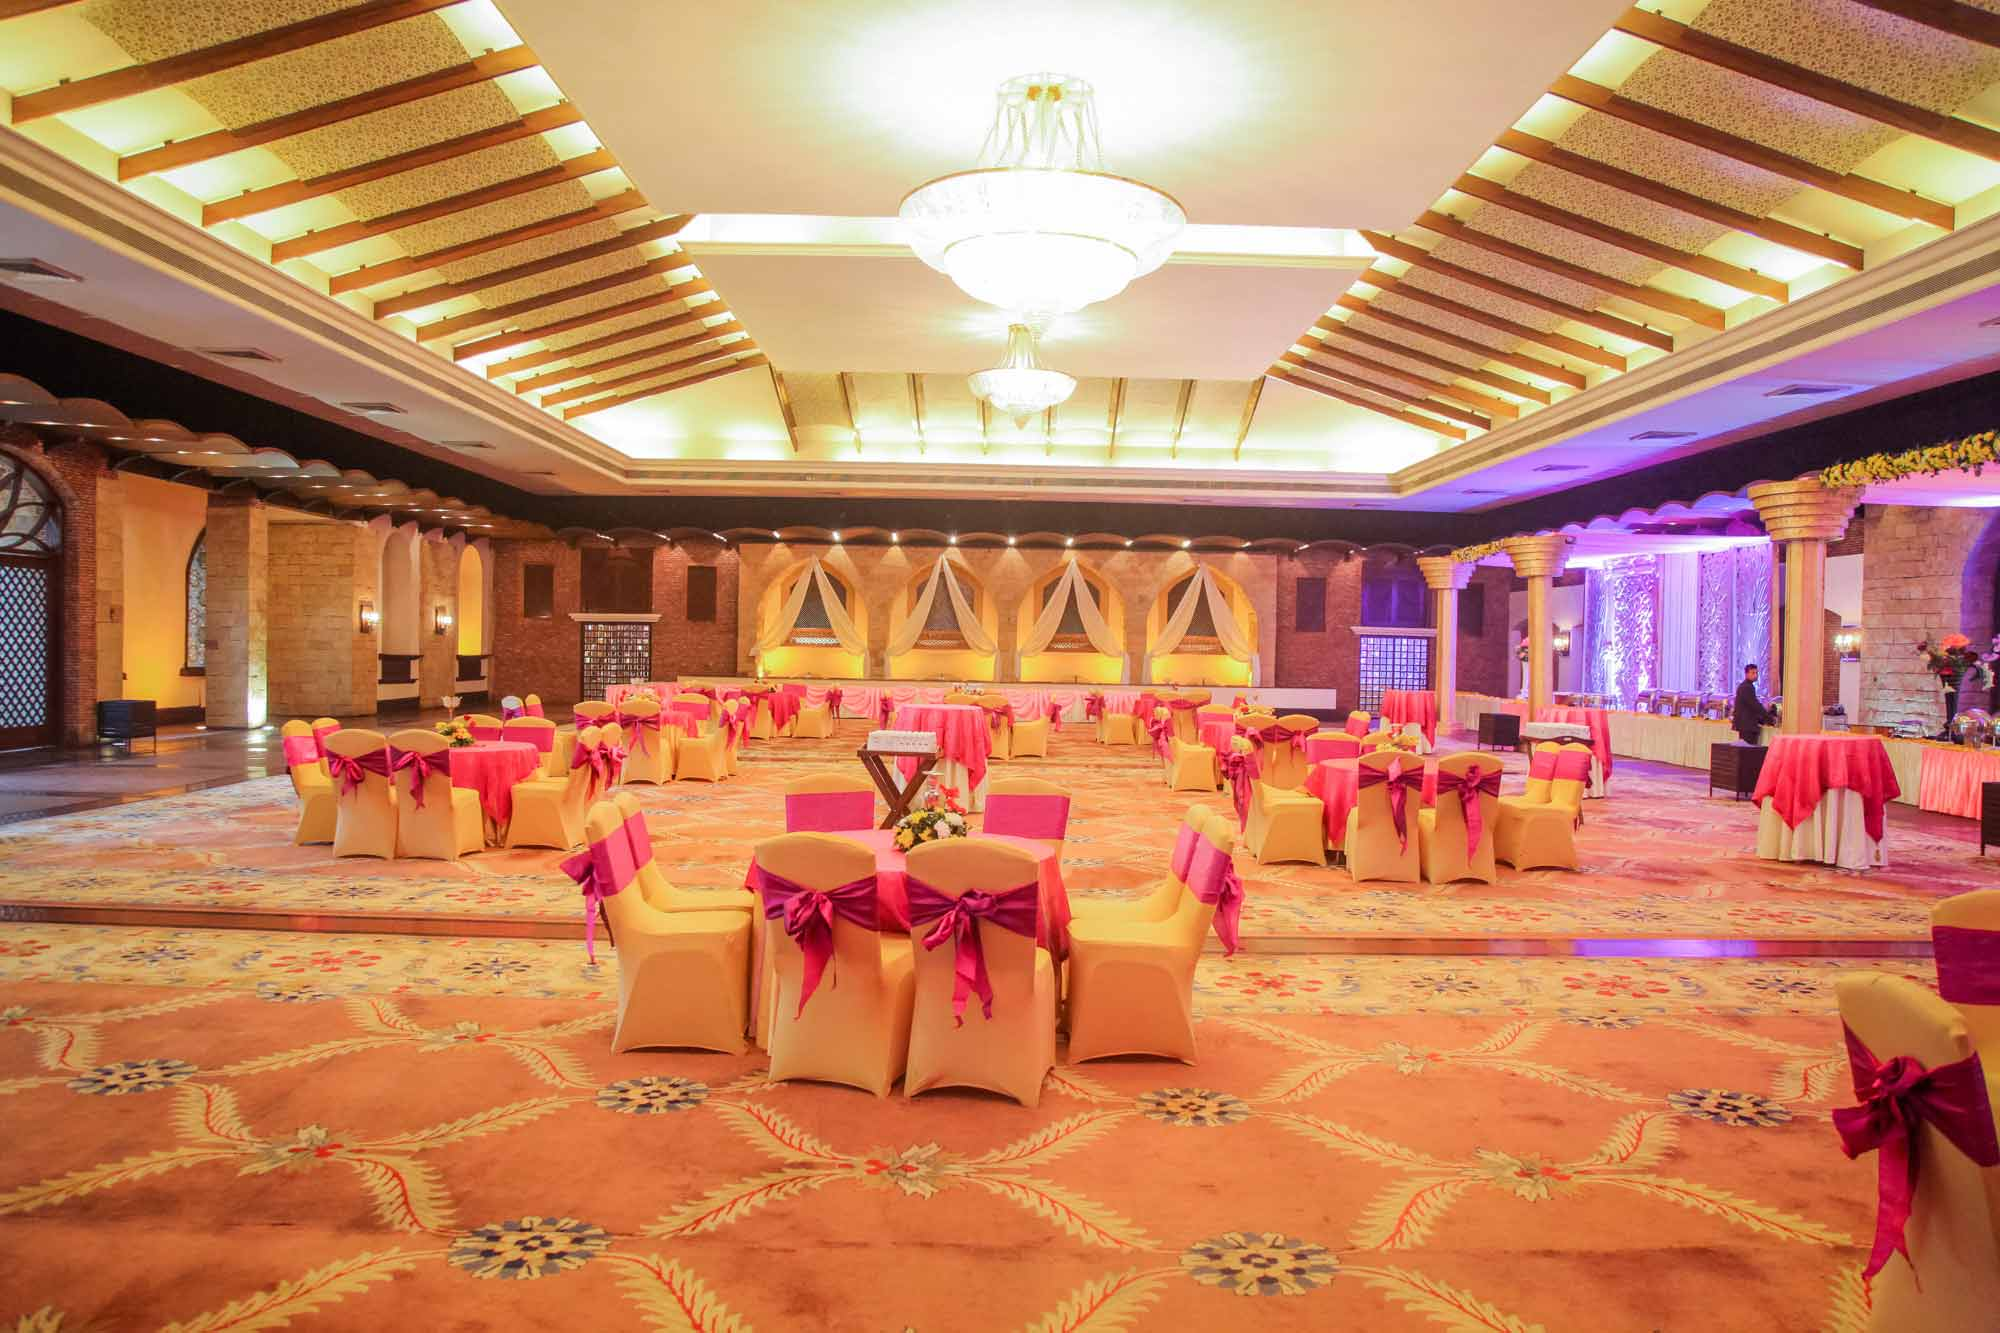 15 wedding venues in punjab to book for your grand wedding image source haveli the heritage junglespirit Gallery